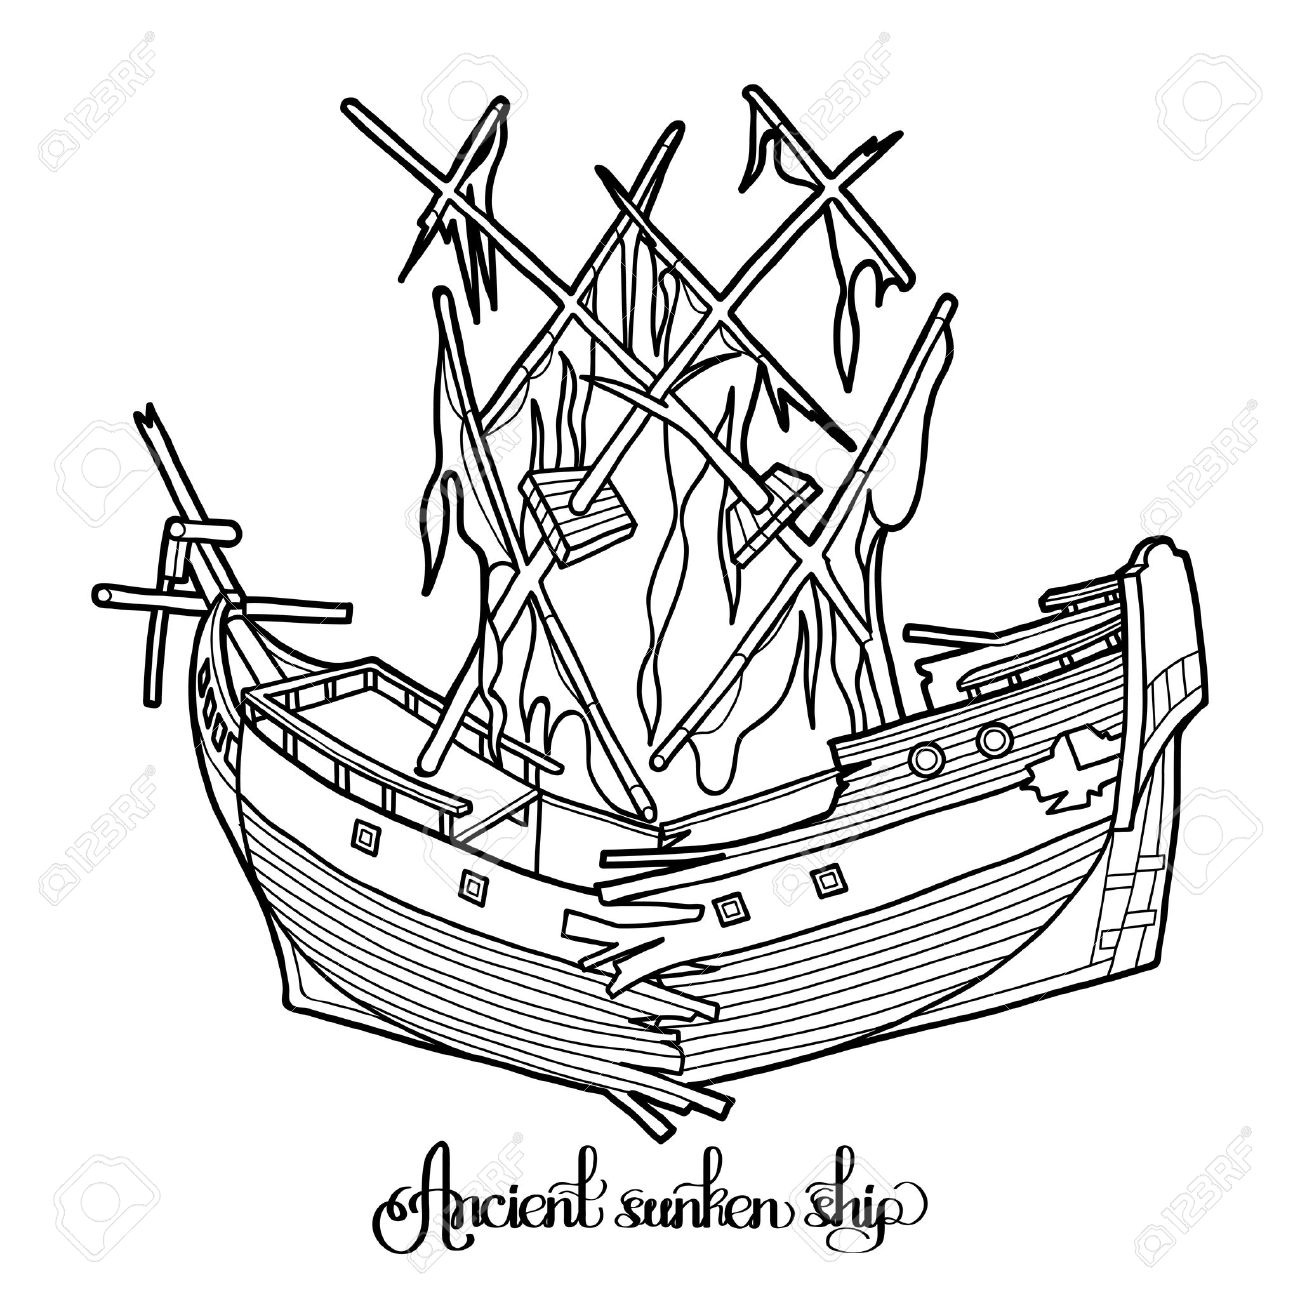 Boats clipart shipwrecked.